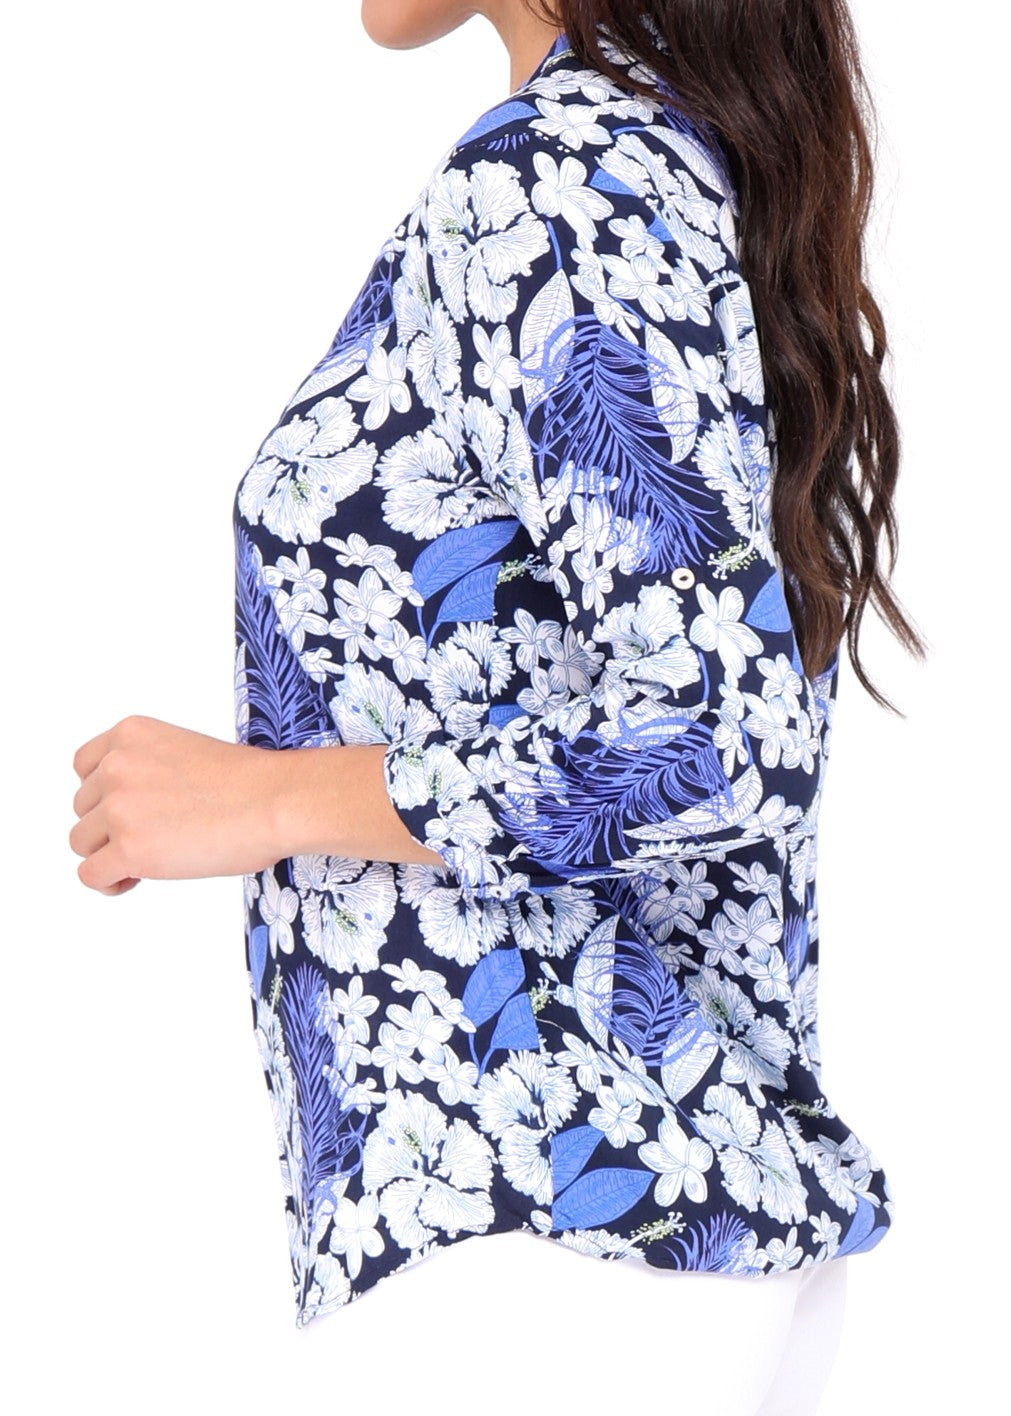 Laurene - Floral Patterned Blouse - Blue